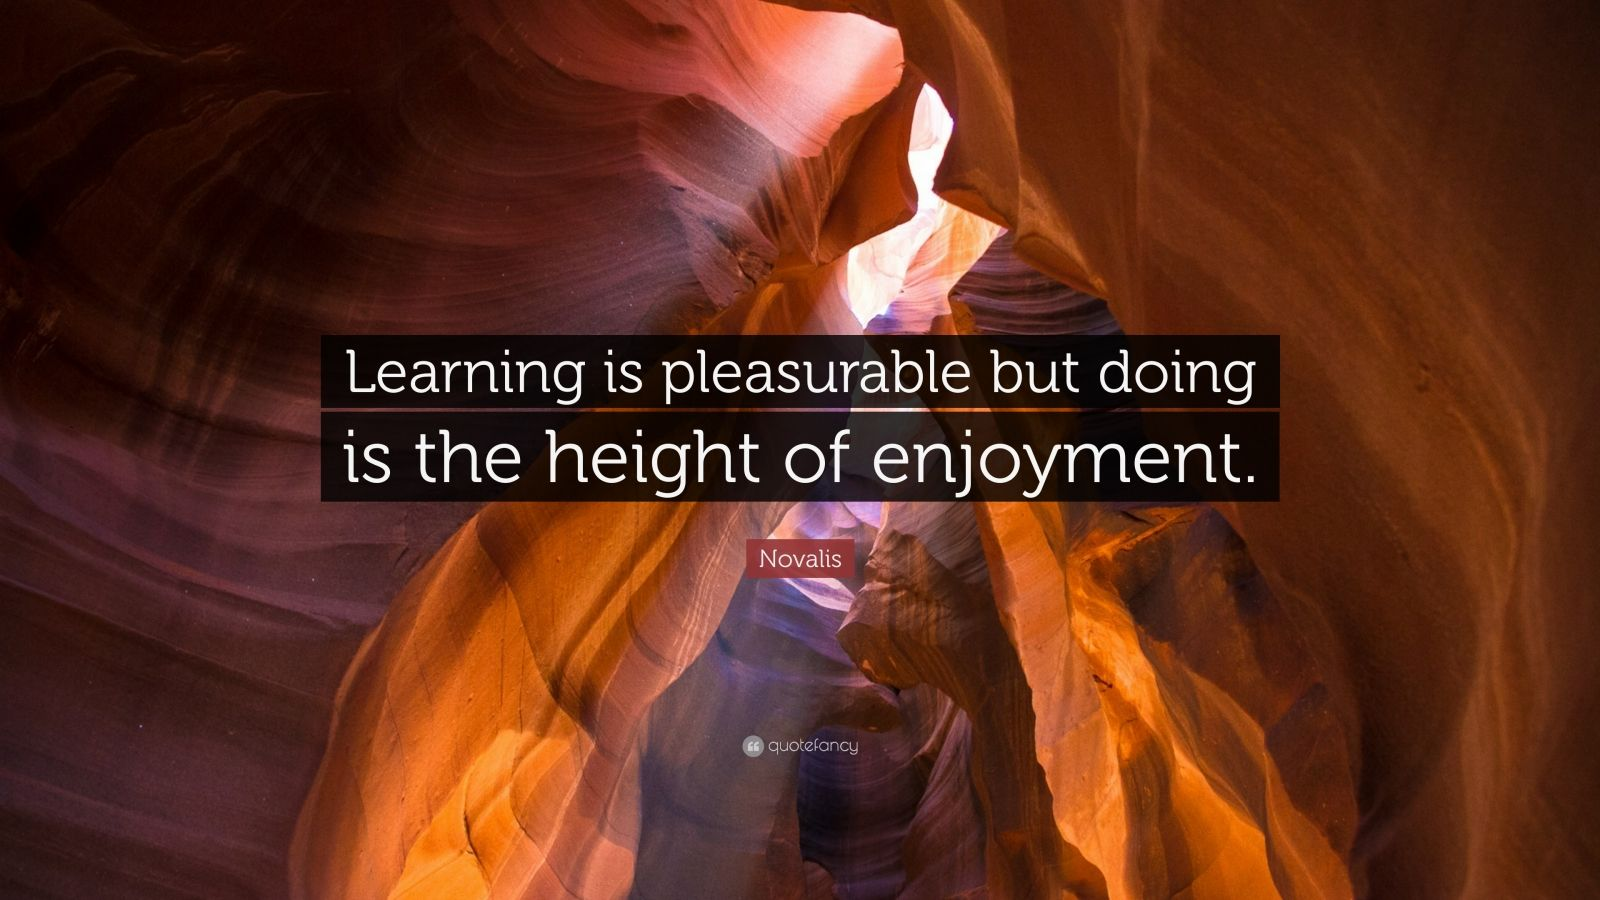 """Novalis Quote: """"Learning is pleasurable but doing is the height of enjoyment."""""""